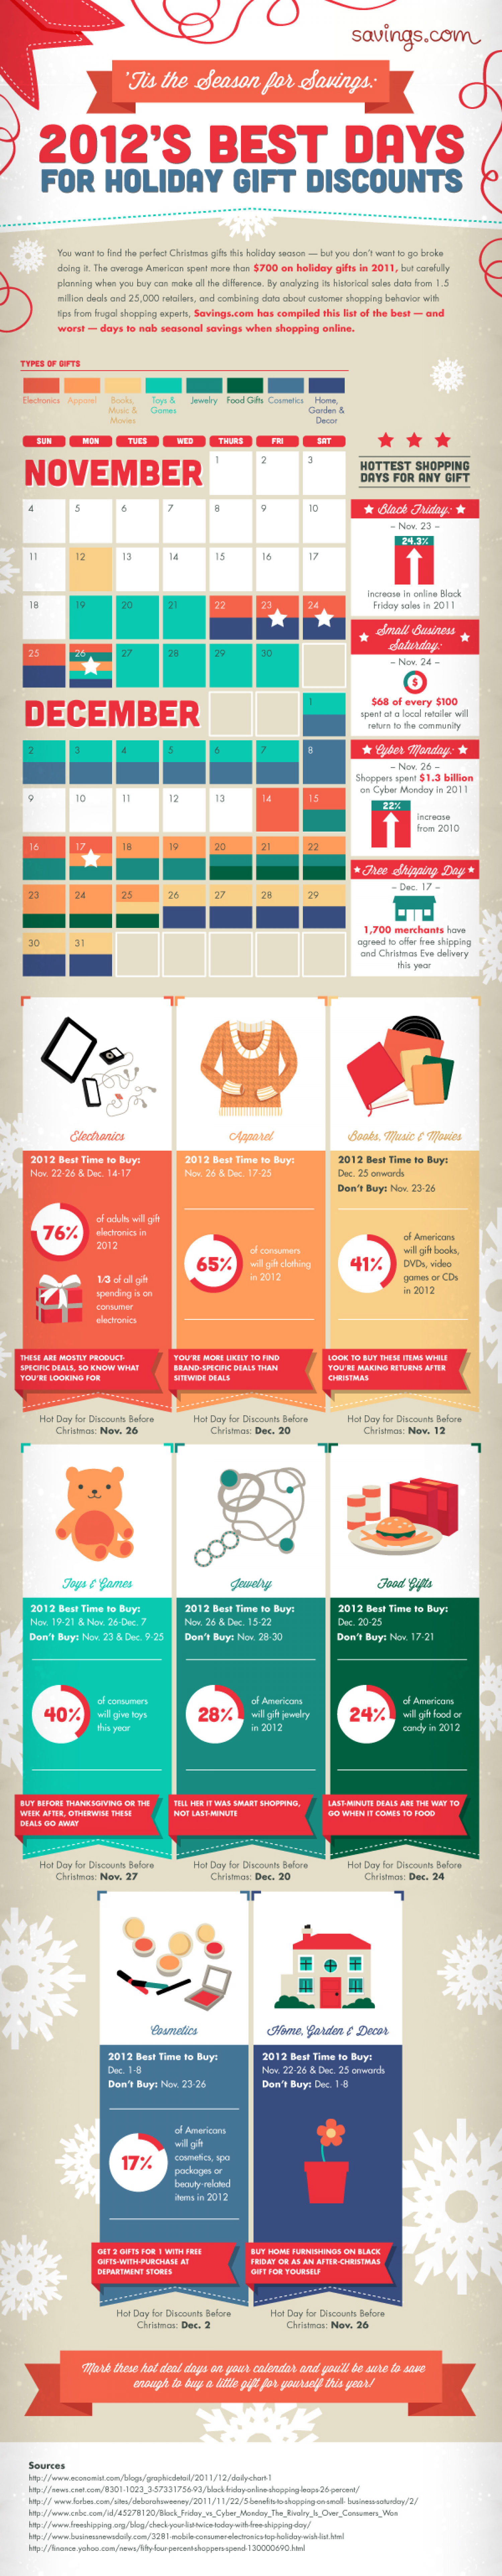 2012's Best Days for Holiday Gift Discounts Infographic